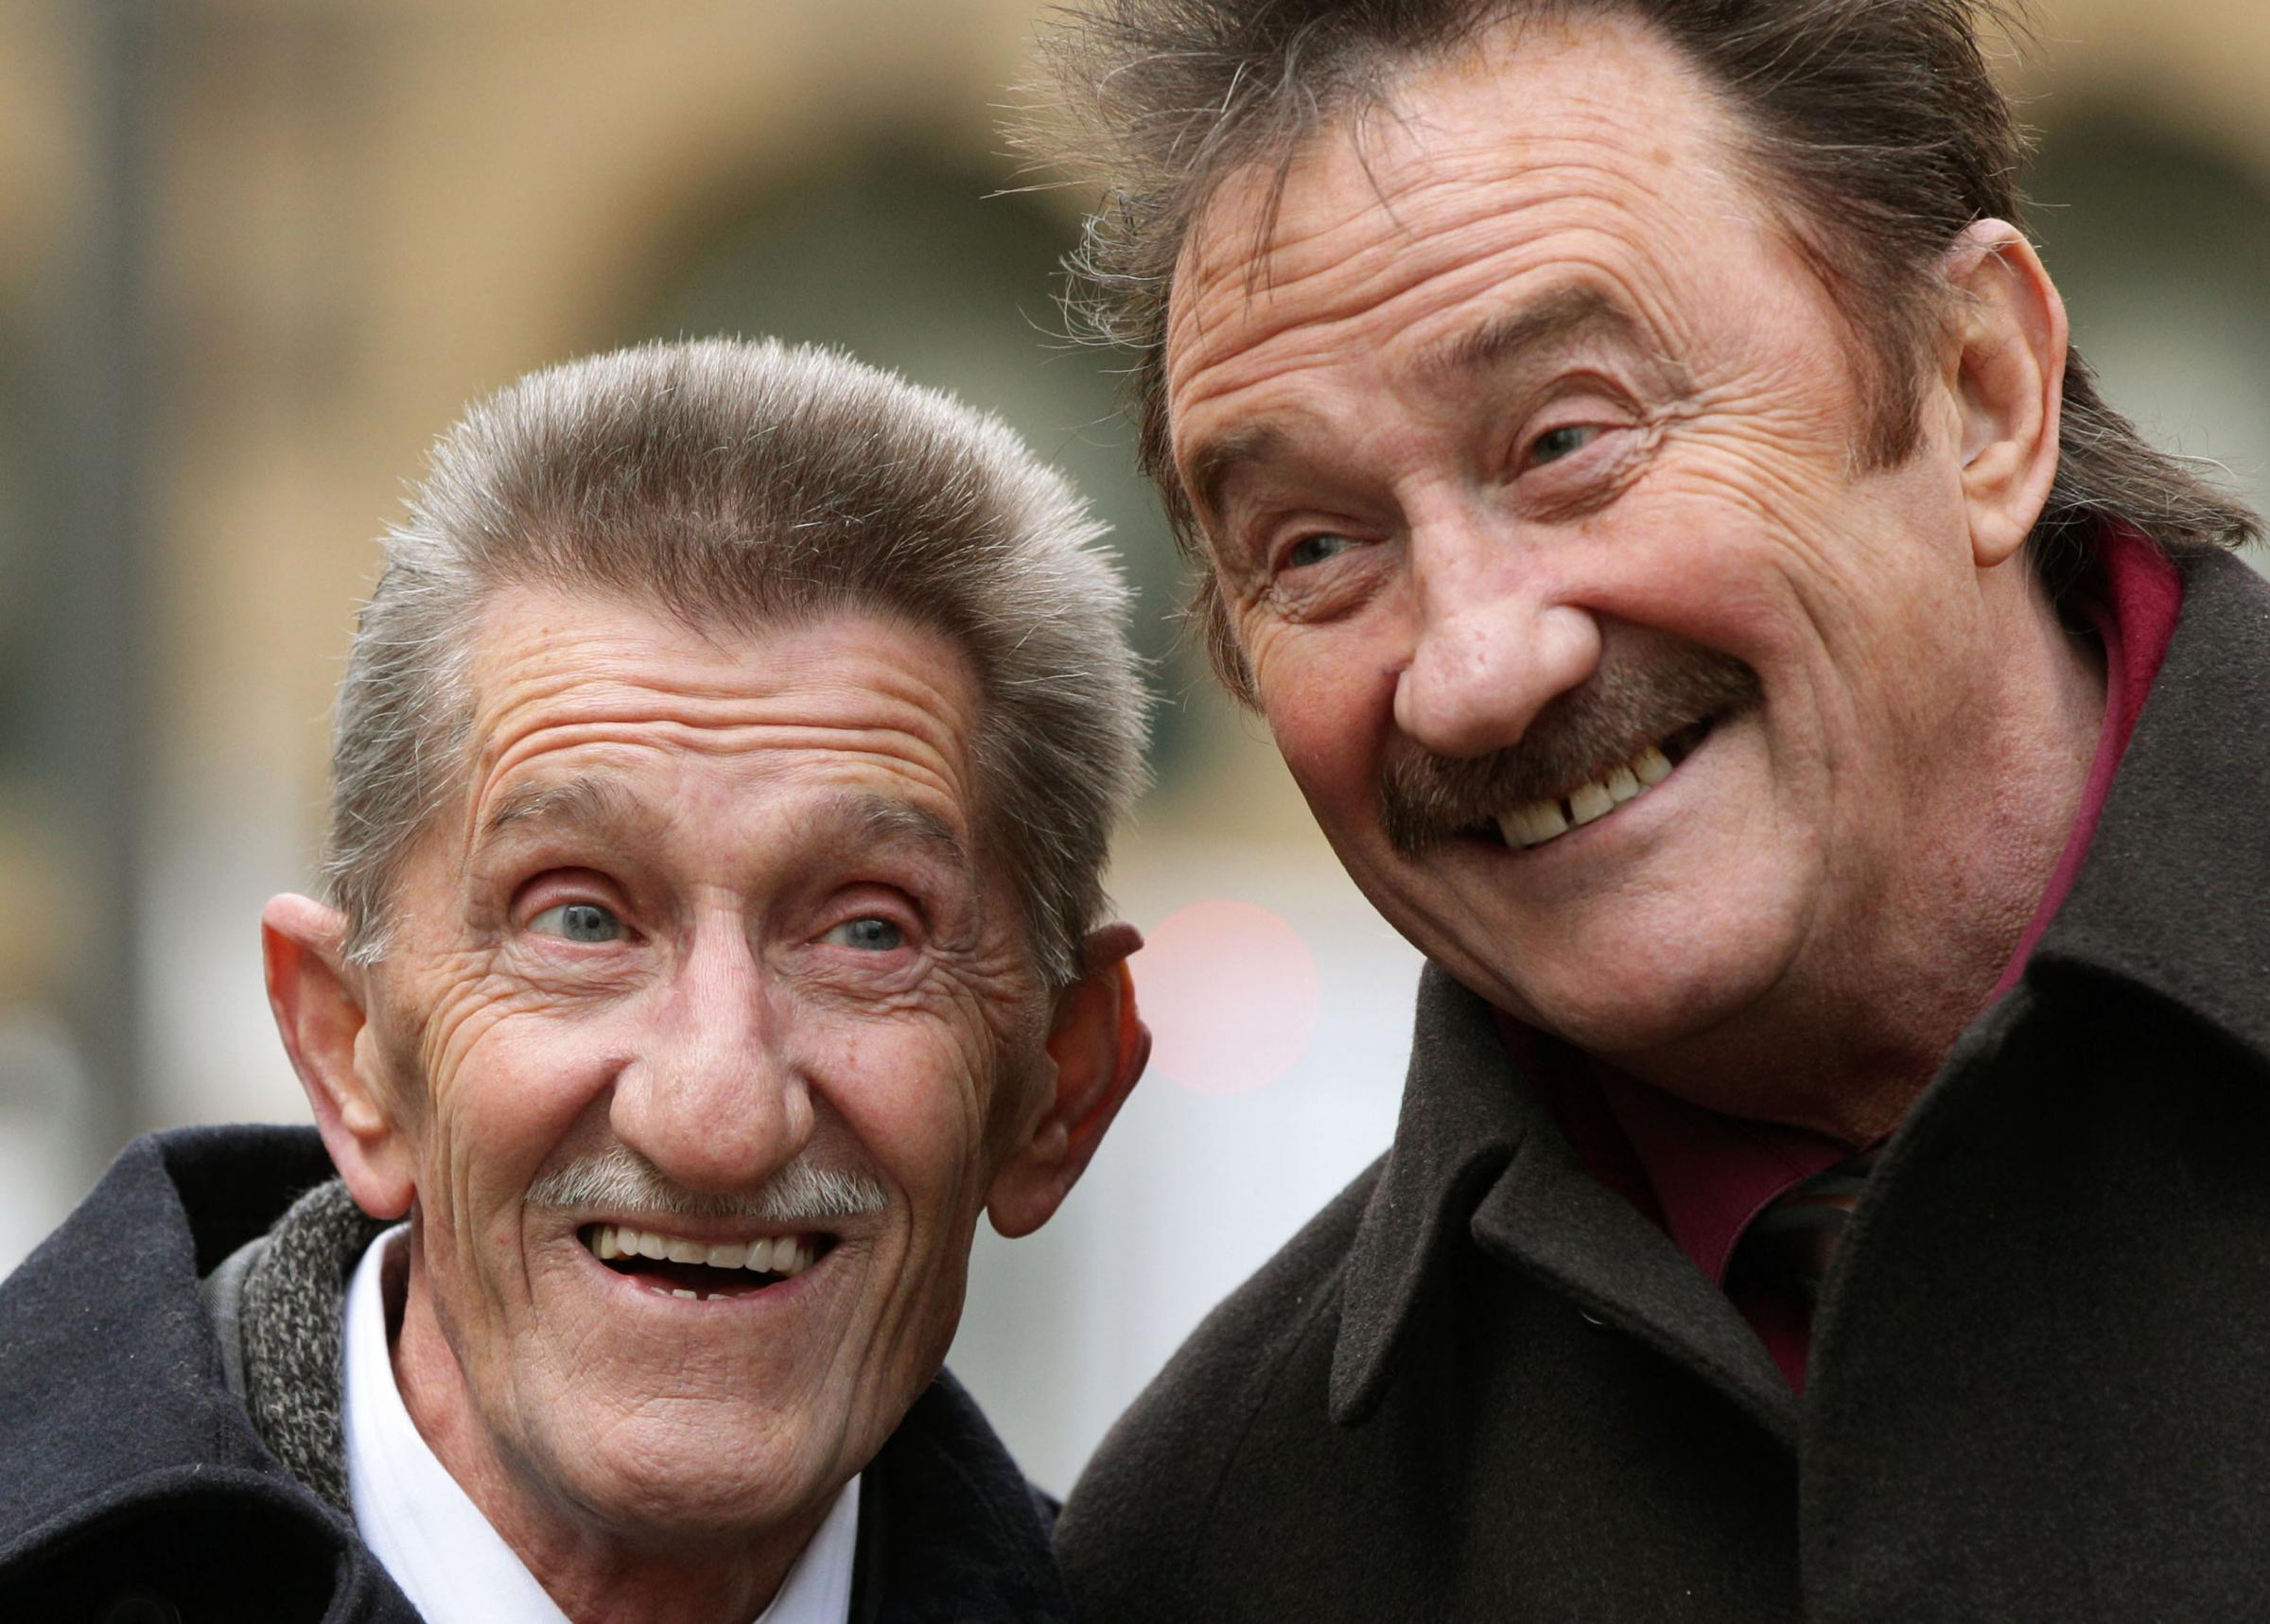 Barry Chuckle, one half of the Chuckle Brothers, has died